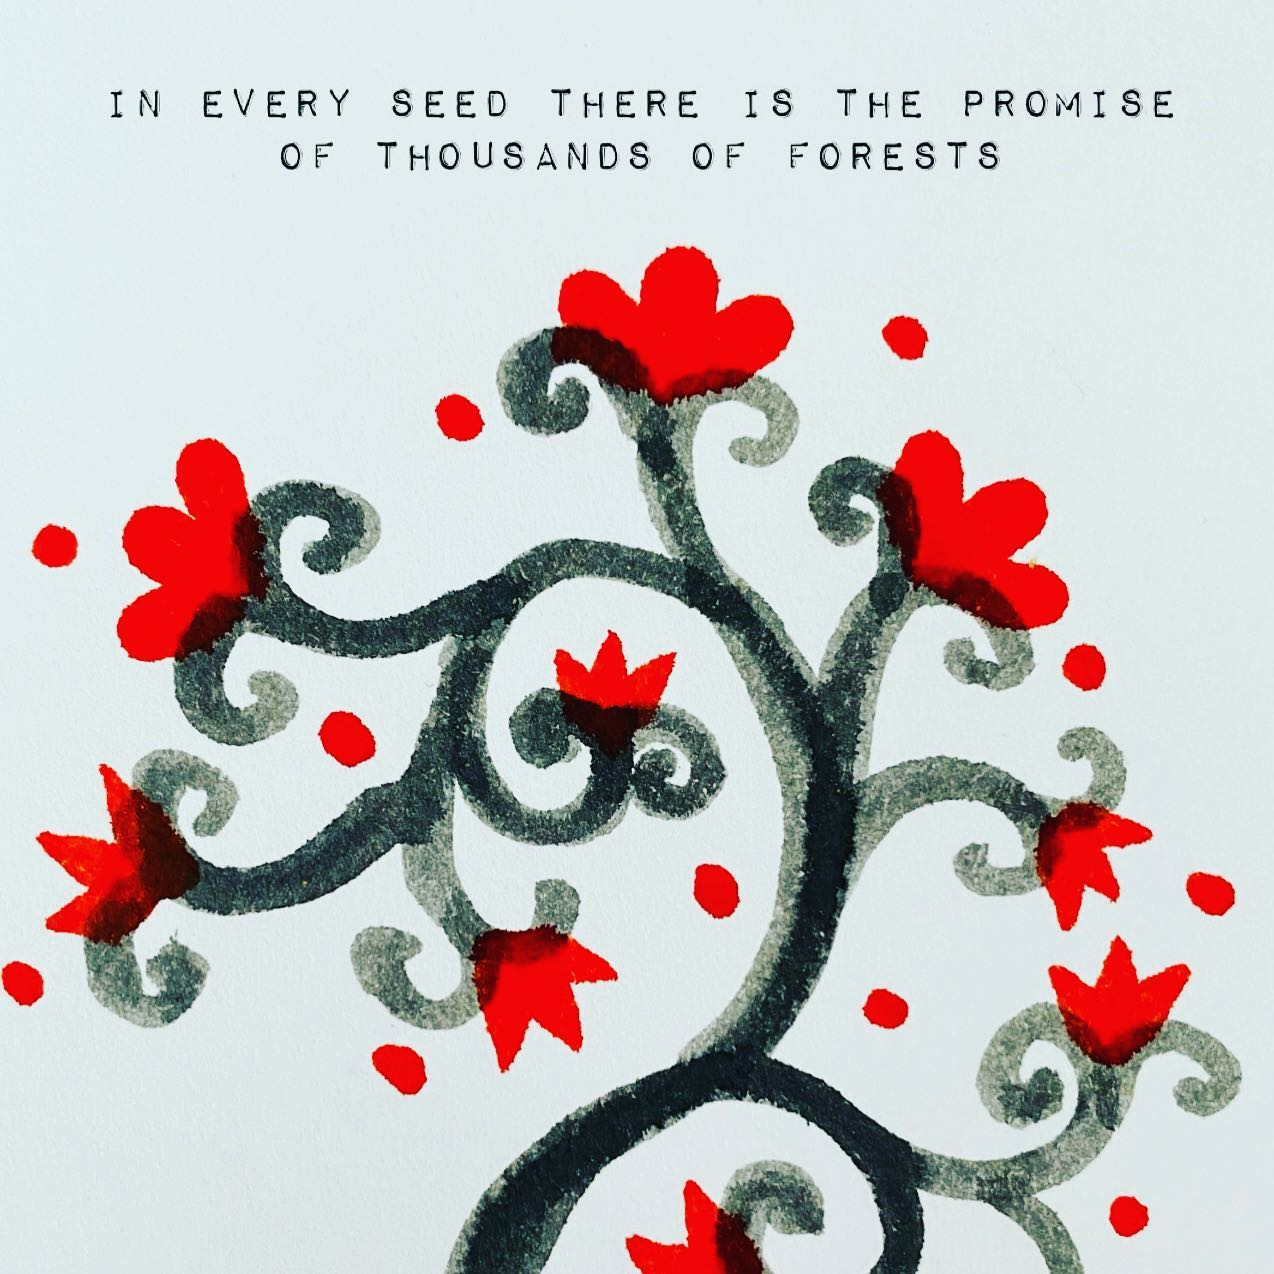 In every seed there is the promise of thousands of forests. ~ Deepak Chopra